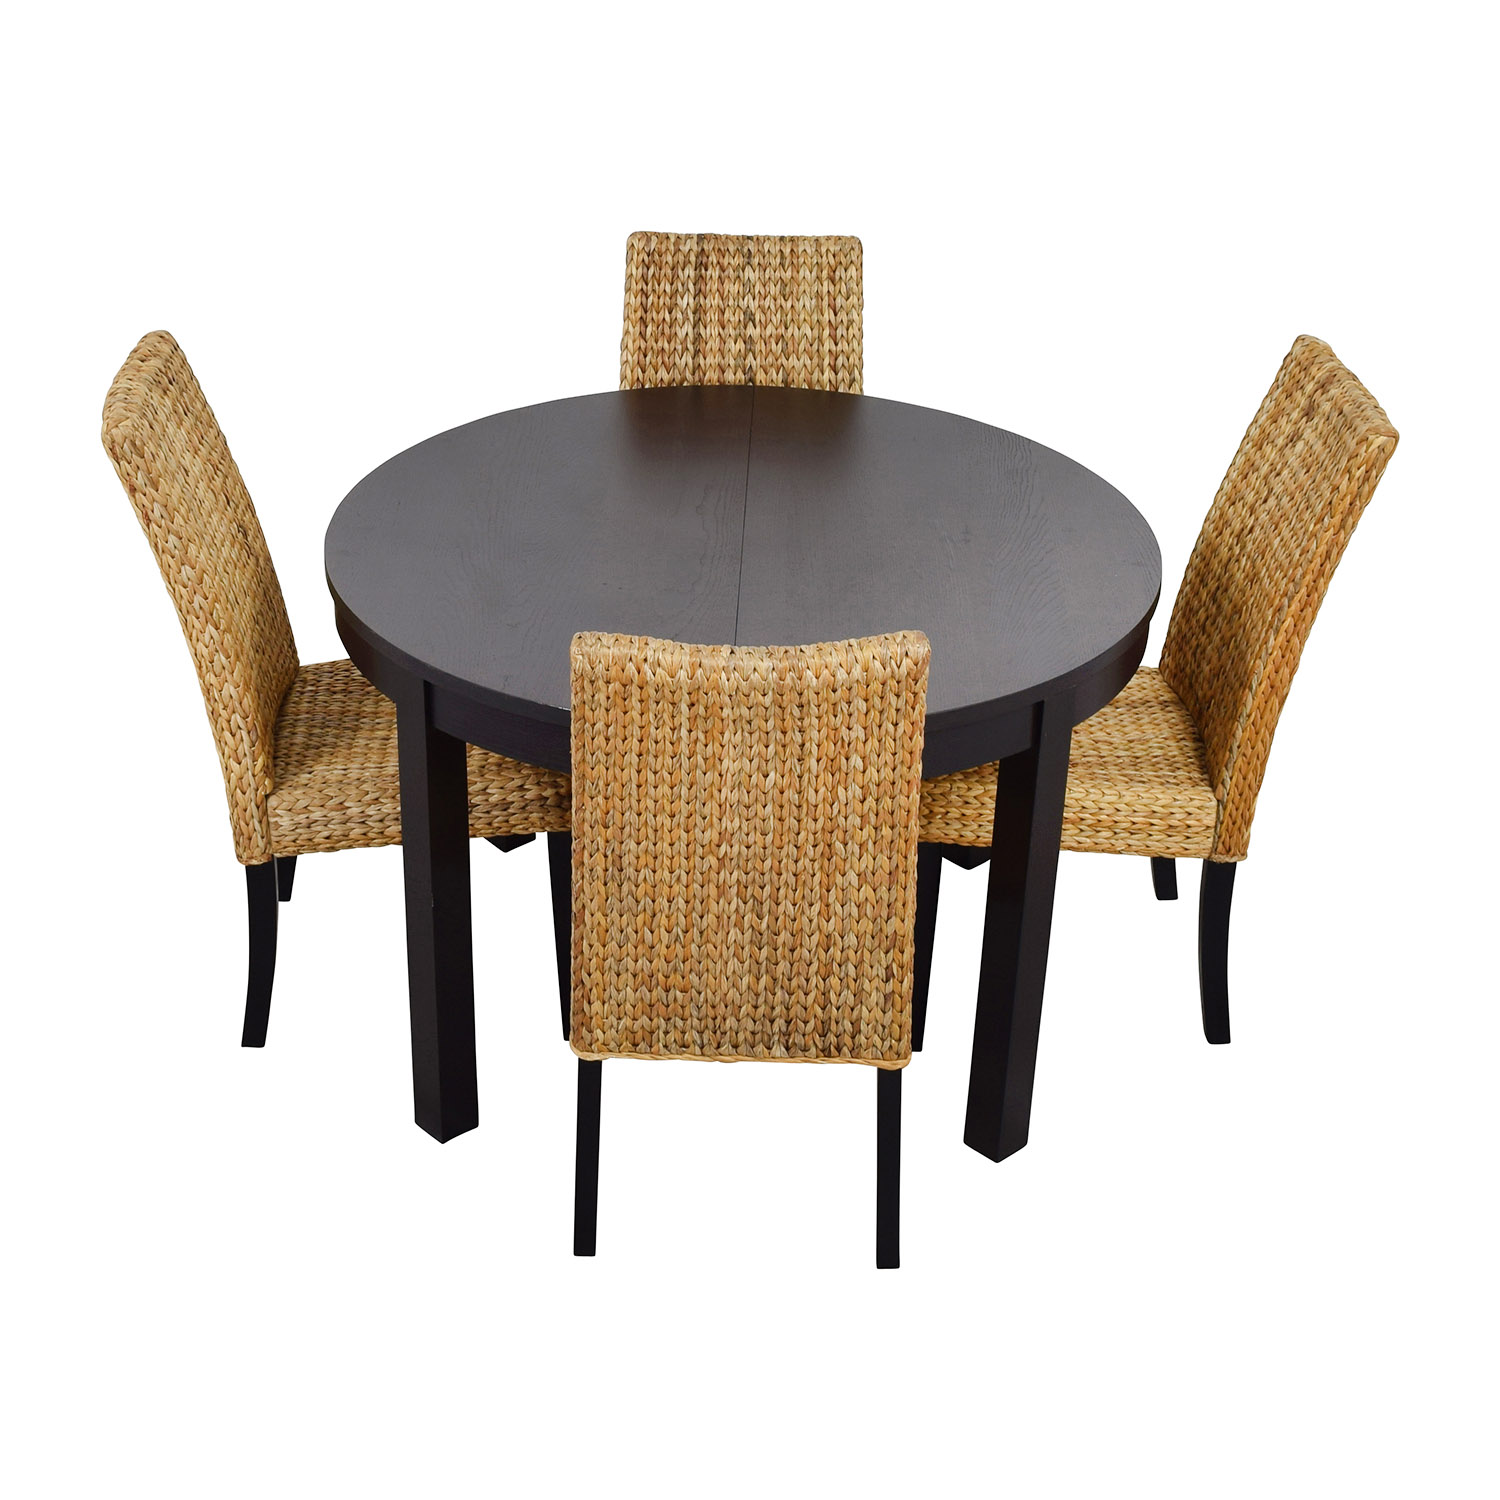 66% OFF Macy s & IKEA Round Black Dining Table Set with Four